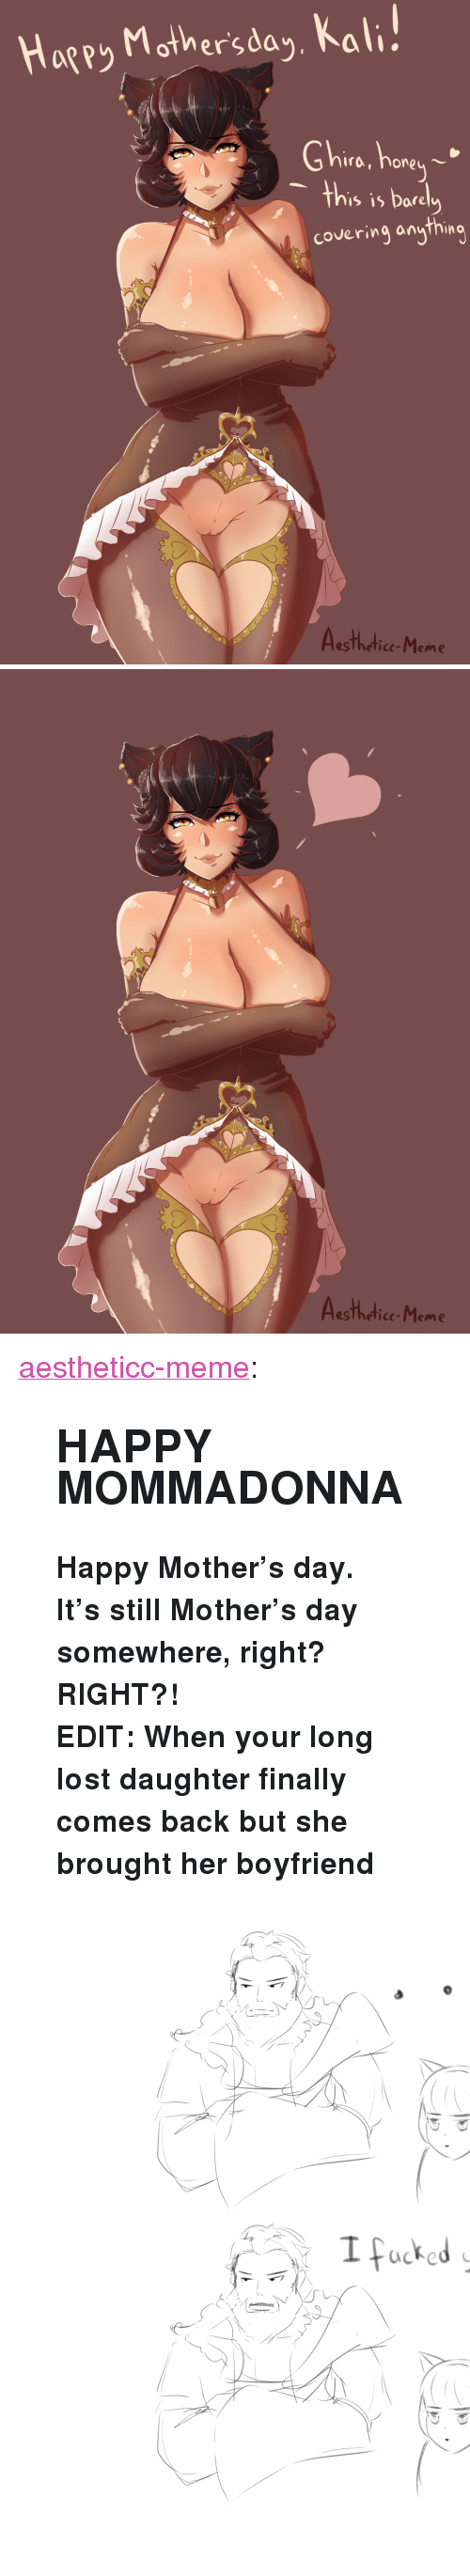 """Hore: Hagey Mother'sda,, Kal  Ghire, hore  's is Dare  covering anything  esTheticc-Meme   Aesthedice-Meme <p><a href=""""https://aestheticc-meme.tumblr.com/post/173897633254/happy-mommadonna-happy-mothers-day-its-still"""" class=""""tumblr_blog"""" target=""""_blank"""">aestheticc-meme</a>:</p>  <blockquote><h2><b>HAPPY MOMMADONNA</b></h2><p><b>Happy Mother's day.</b></p><p><b>It's still Mother's day somewhere, right? RIGHT?!</b></p><p><b>EDIT: When your long lost daughter finally comes back but she brought her boyfriend</b></p><figure class=""""tmblr-full"""" data-orig-height=""""2994"""" data-orig-width=""""2480""""><img src=""""https://78.media.tumblr.com/96786384d4e49eb02ee01438d2ad255e/tumblr_inline_p8qdxsGKwz1sdoznj_540.png"""" data-orig-height=""""2994"""" data-orig-width=""""2480""""/></figure></blockquote>"""